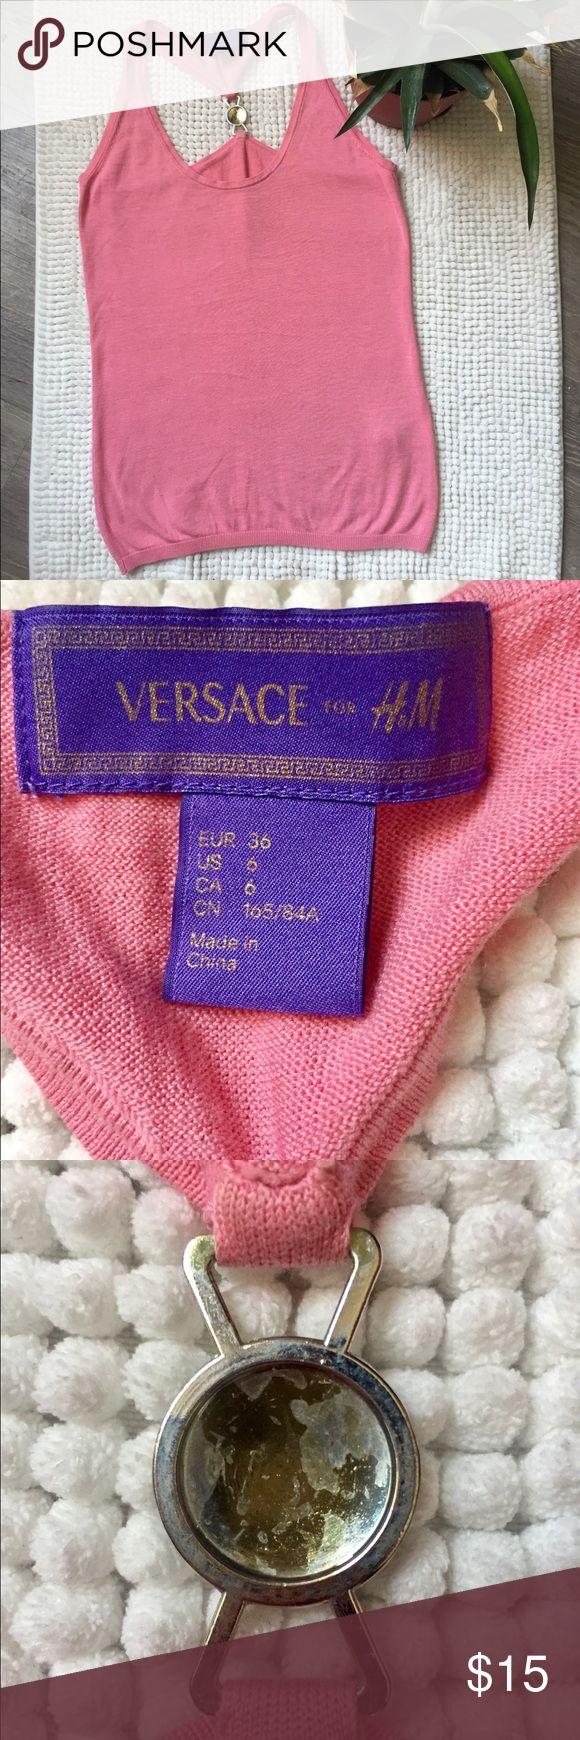 VERSACE FOR H&M Pink Top This Is A Nice Pink Top From VERSACE FOR H&M. I Was Wearing It Especially During The Summer Times. It Looks So Pretty From The Back Because Of The 'Metal Logo'. As You Can See On The Pictures That The Back Of The VERSACE 'Metal Logo' Faded Through Washing And A Tiny Little Thread Looks Out On The Back/Right Side.Of The Top. Versace for H&M Tops Tank Tops